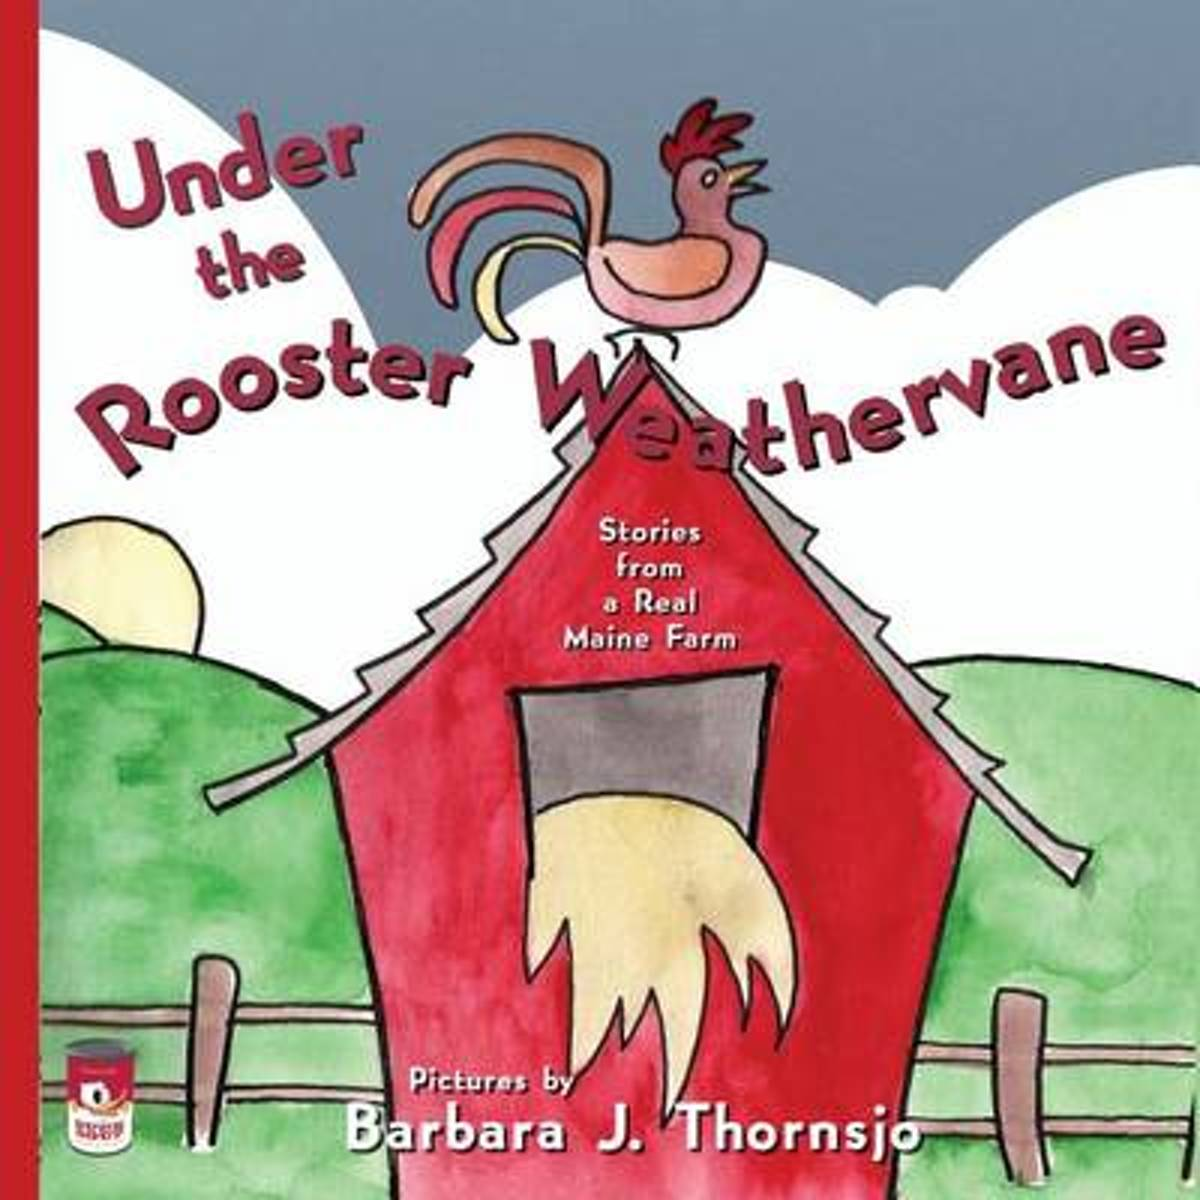 Under the Rooster Weathervane